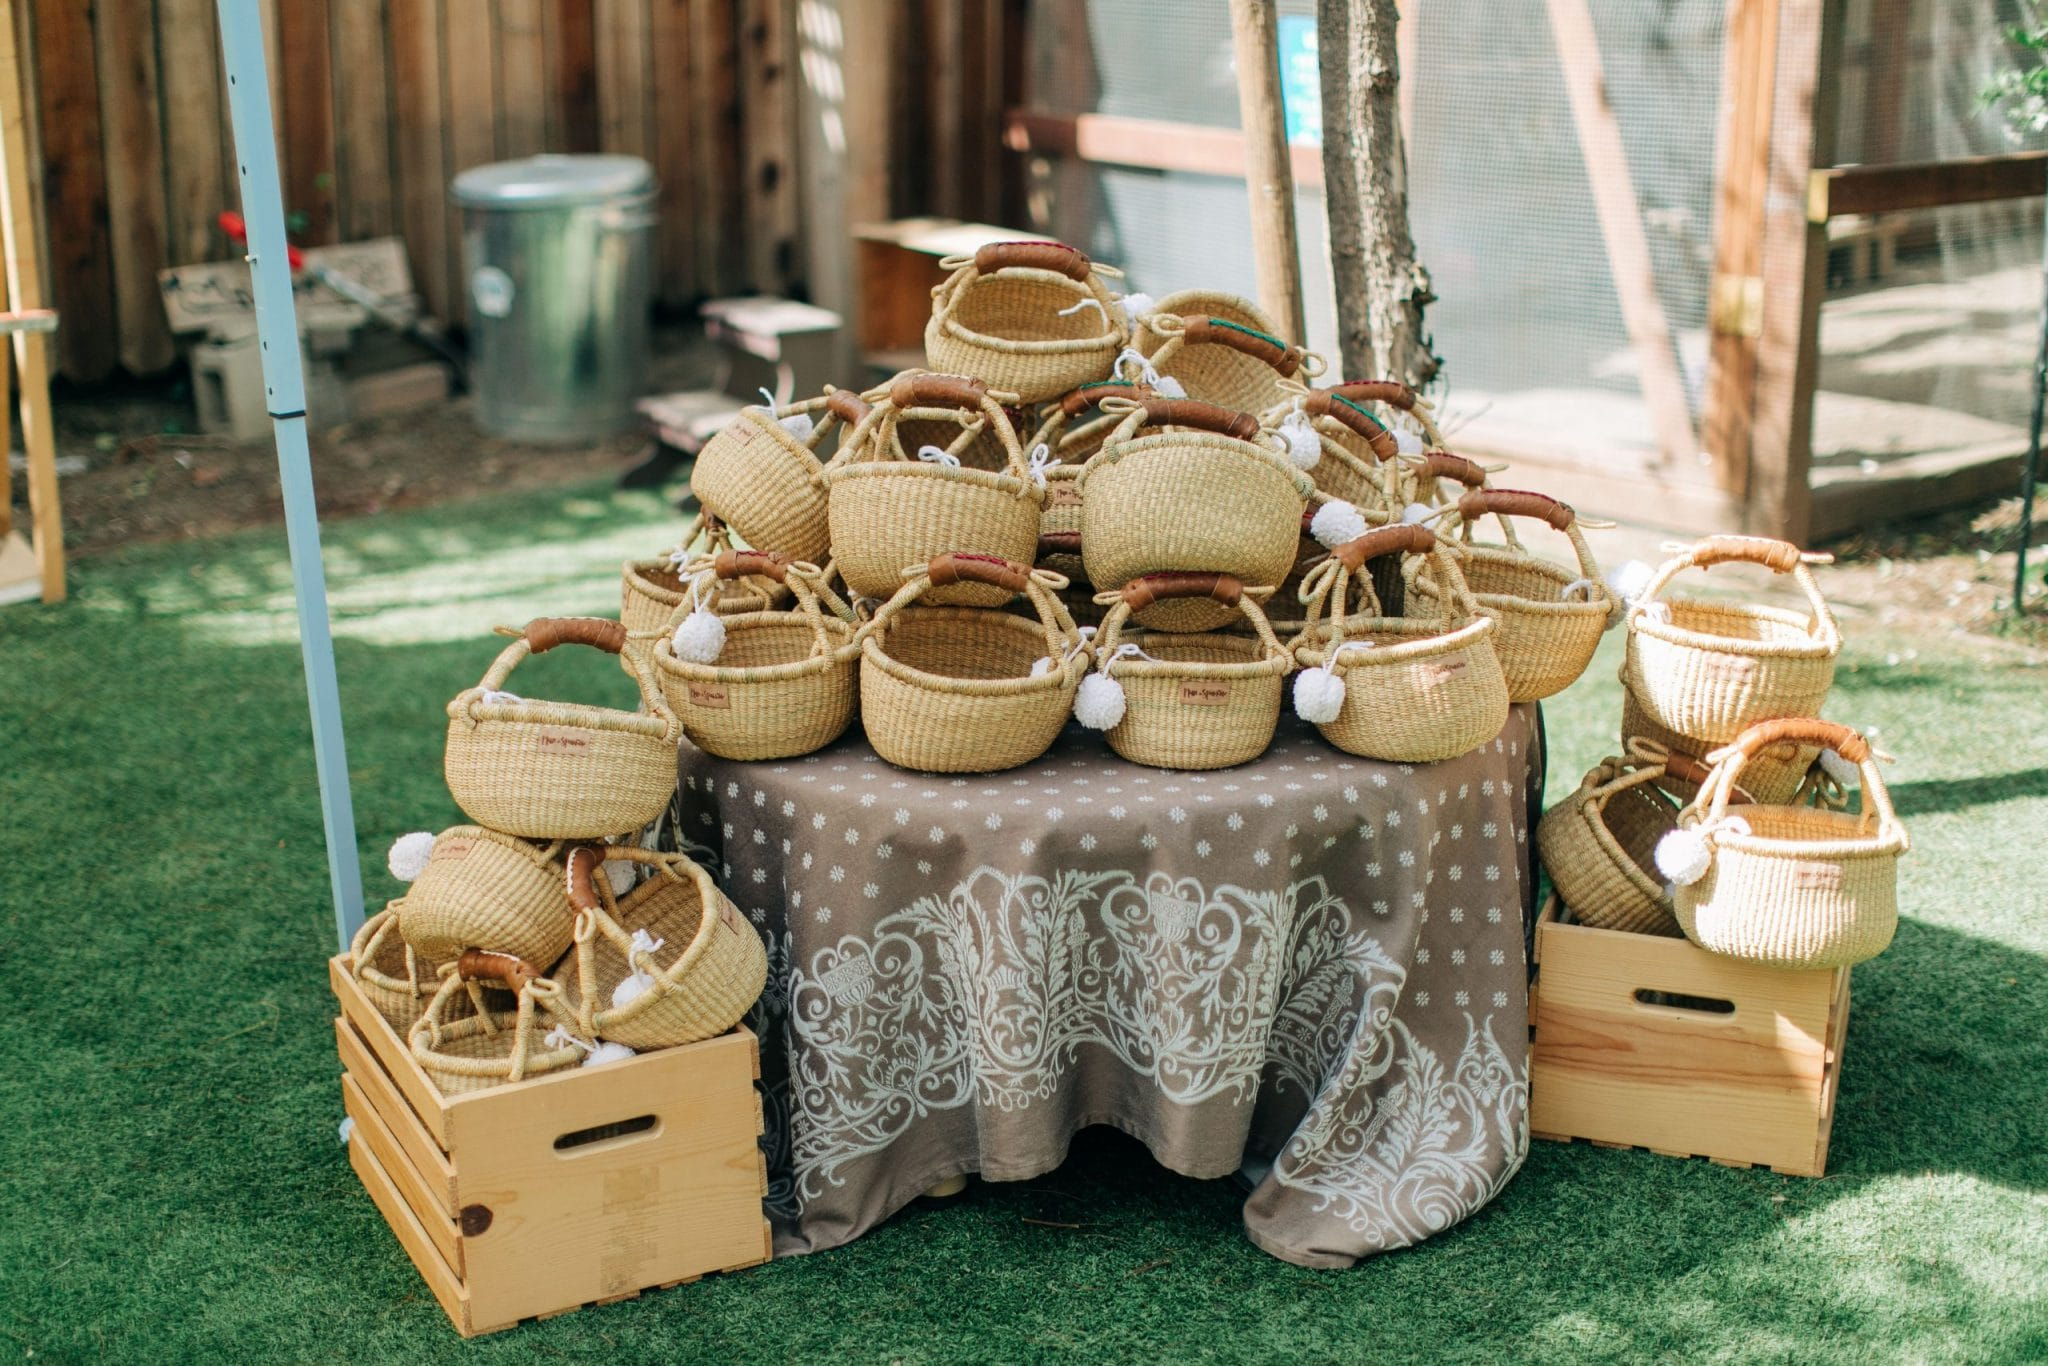 Woven goodie baskets at the party